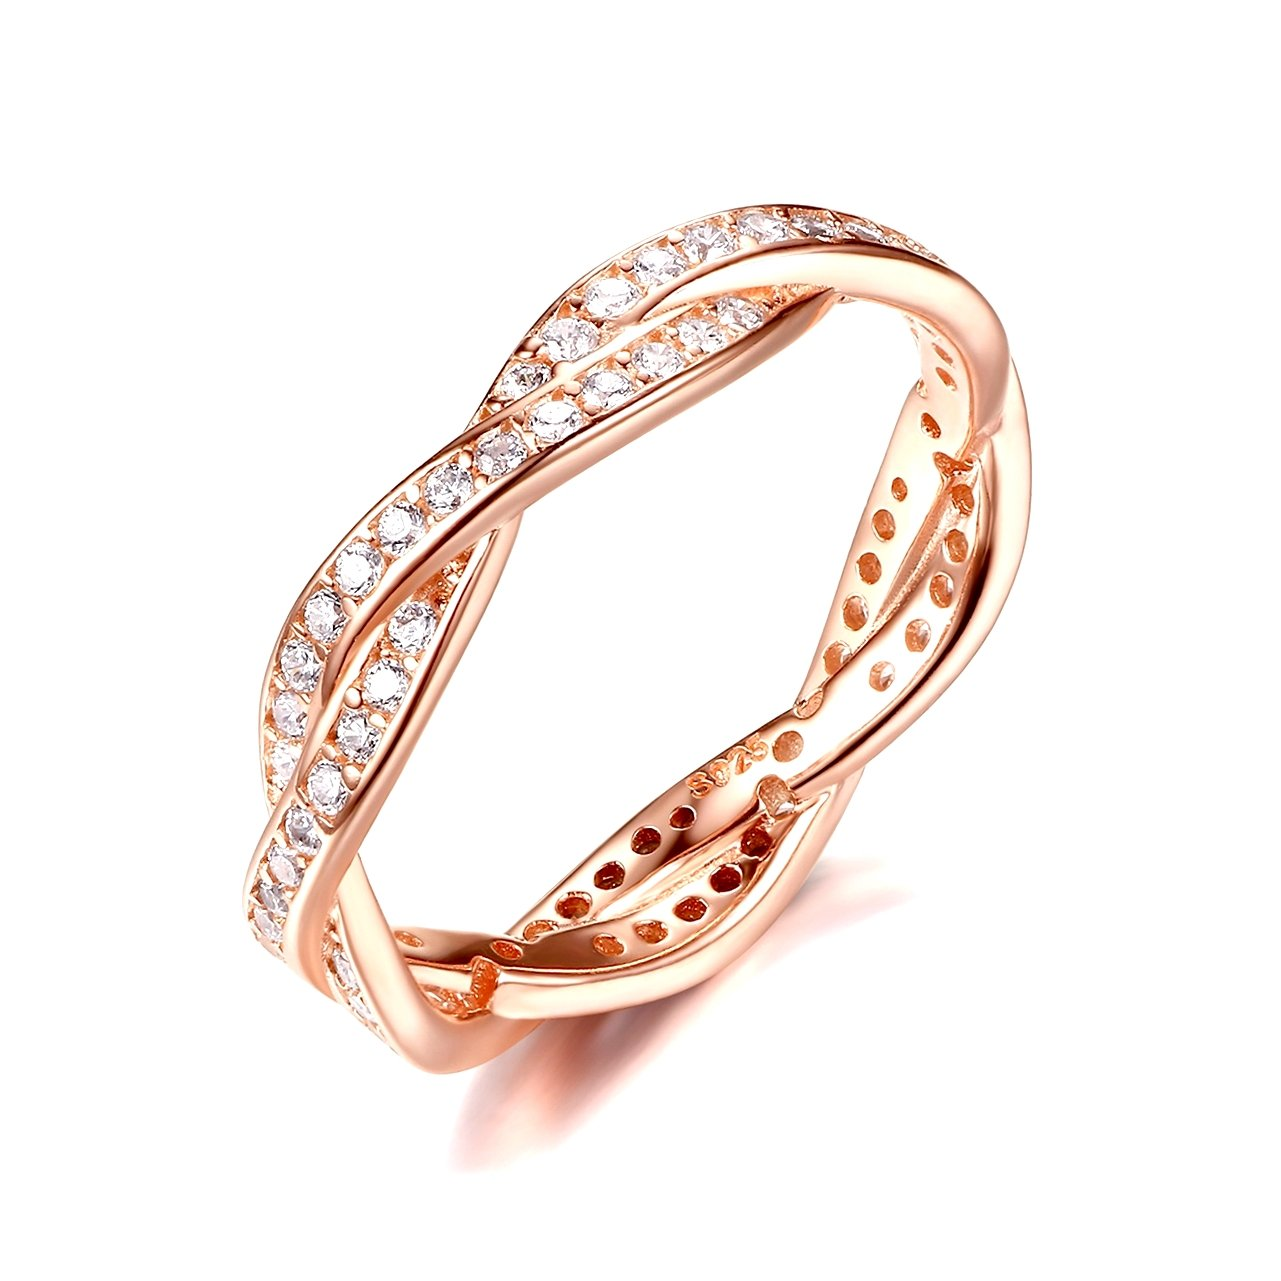 Presentski 925 Sterling Silver Rose Gold Plated Engagement Ring With Cubic Zirconia Weave Design Size 5-10 RYS-10